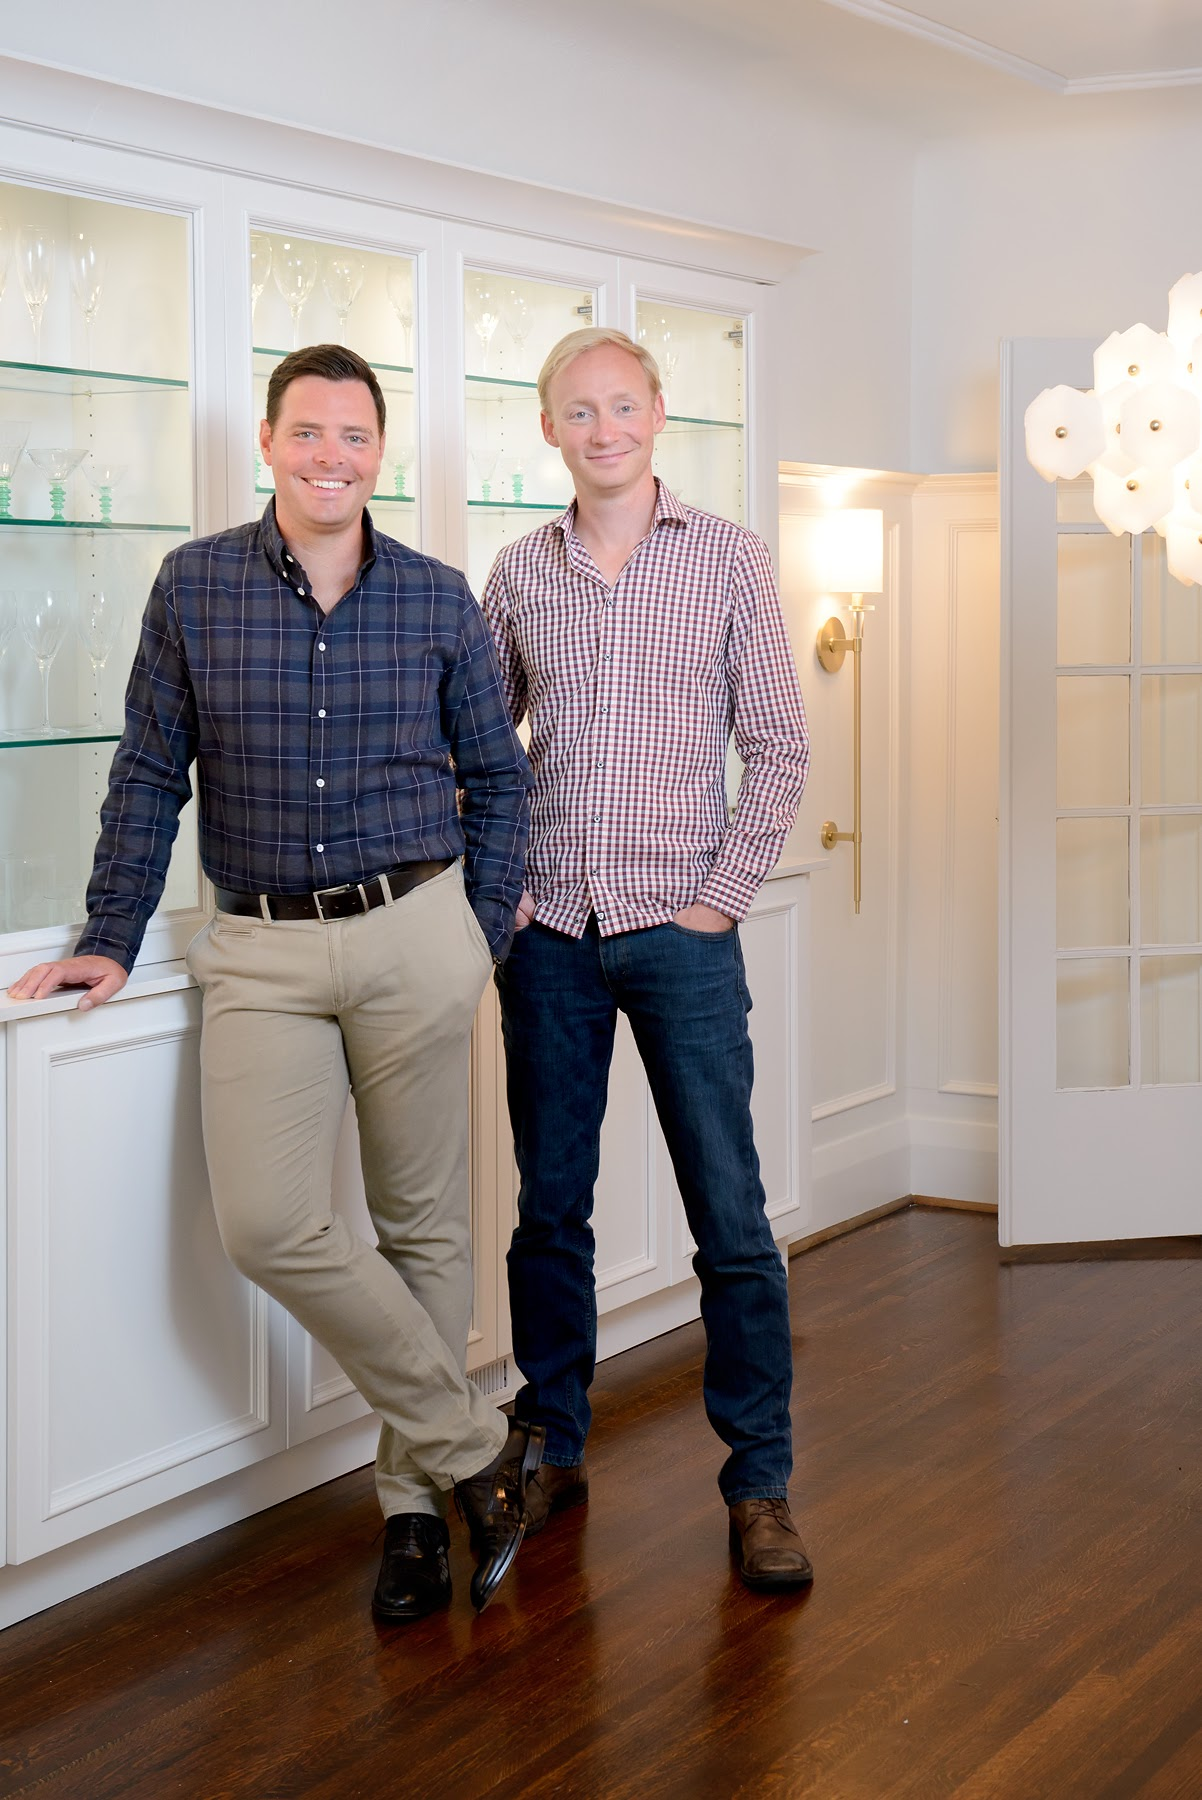 Welcome to Home by Tim + Chris - We are a full service design firm, located in the Kawartha Lakes, and with a focus on interior design, kitchens, bathrooms, custom closets, built-ins and decor. We can help from the design phase through to the installation and decorate phase. We have been designing dream homes for the past 15 years and would love to take your concept from design to built and decorated.With Home by Tim + Chris, you won't have to leave your office to bring your project to life. Thanks to our network in Toronto and the Kawarthas, we can spend time in the city finding the right fixtures for your cottage or home, and then with our project management and construction experience we will ensure that your project gets installed with little impact on your time and with careful consideration of your budget. We take great pride in our ability to help our clients realize their dream project.